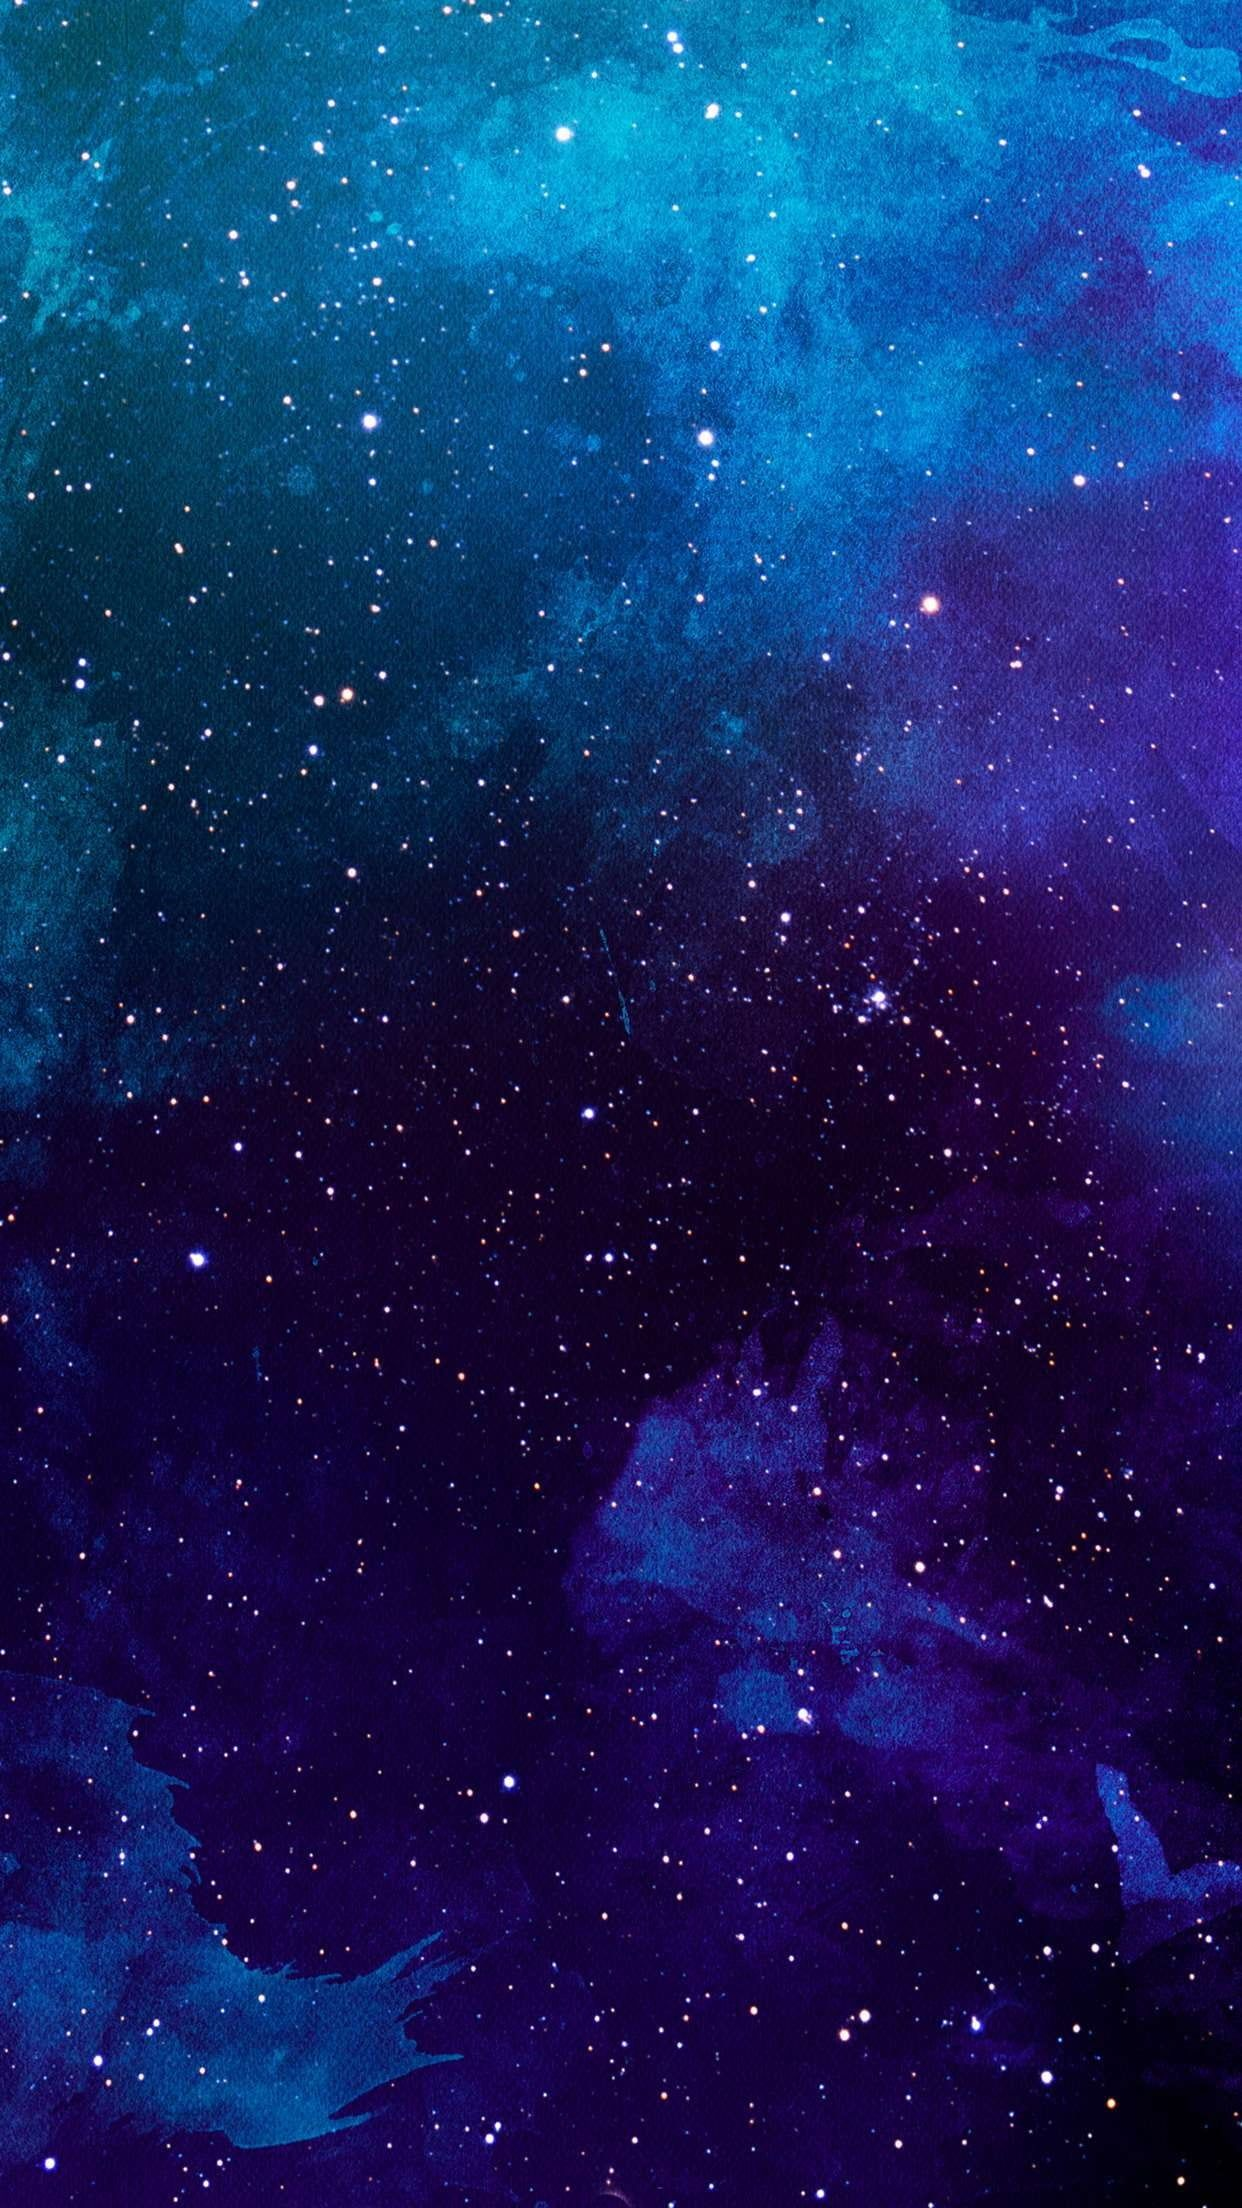 Purple And Blue Galaxy Illustration Digital Art Colorful 1080p Wallpaper Hdwallpape Purple Galaxy Wallpaper Galaxy Wallpaper Iphone Purple Wallpaper Iphone